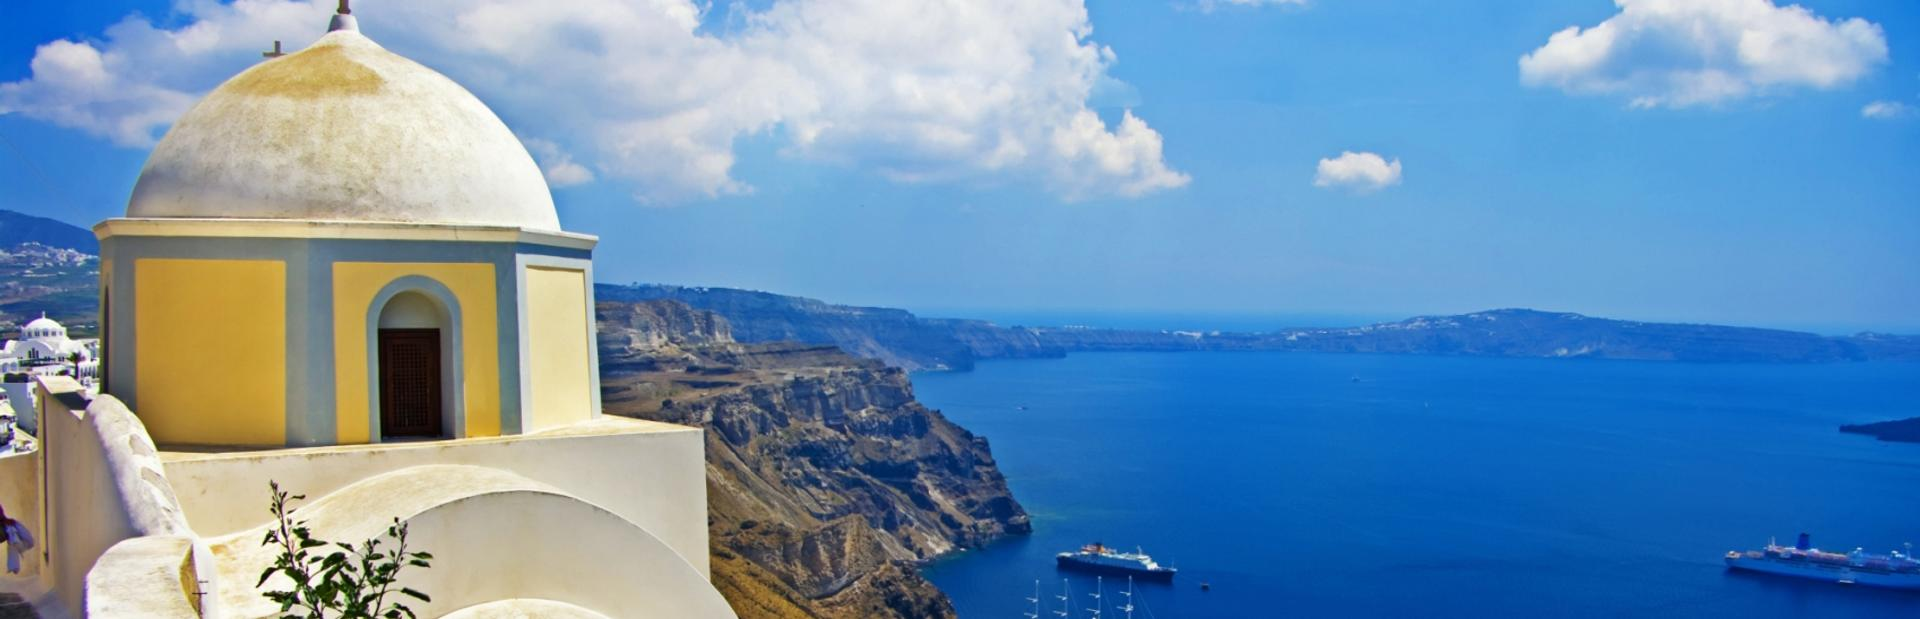 Cyclades Islands climate photo